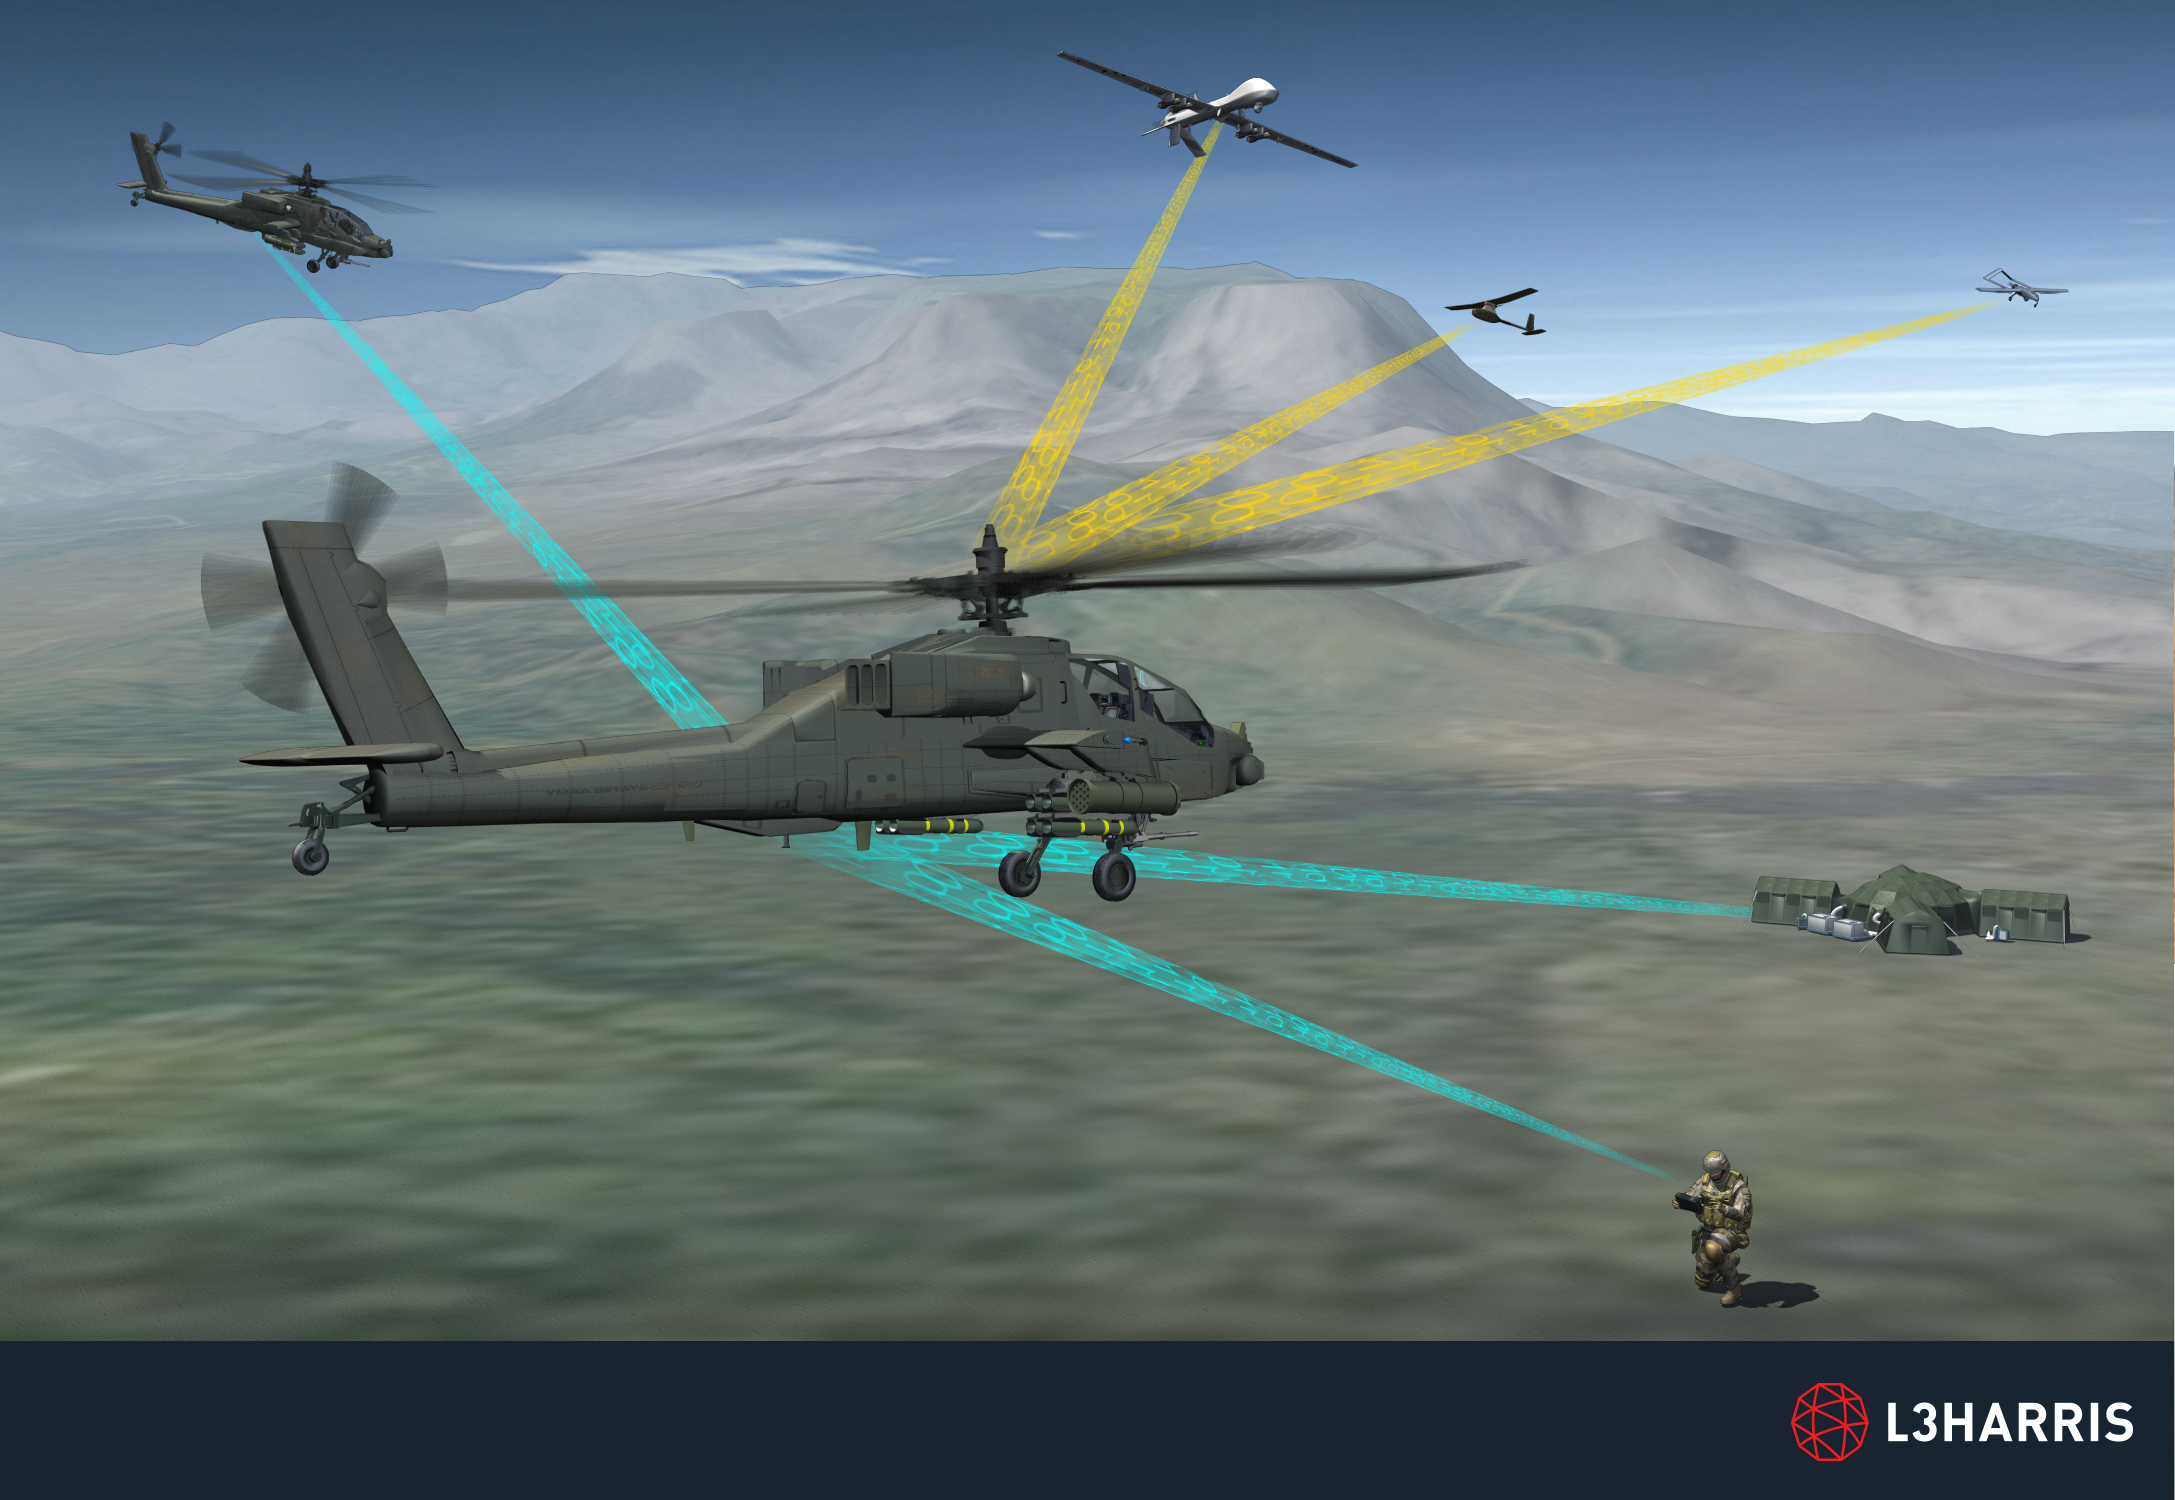 l3harris rsquo manned unmanned teaming mumt airborne data link system made in utah protecting troops worldwide